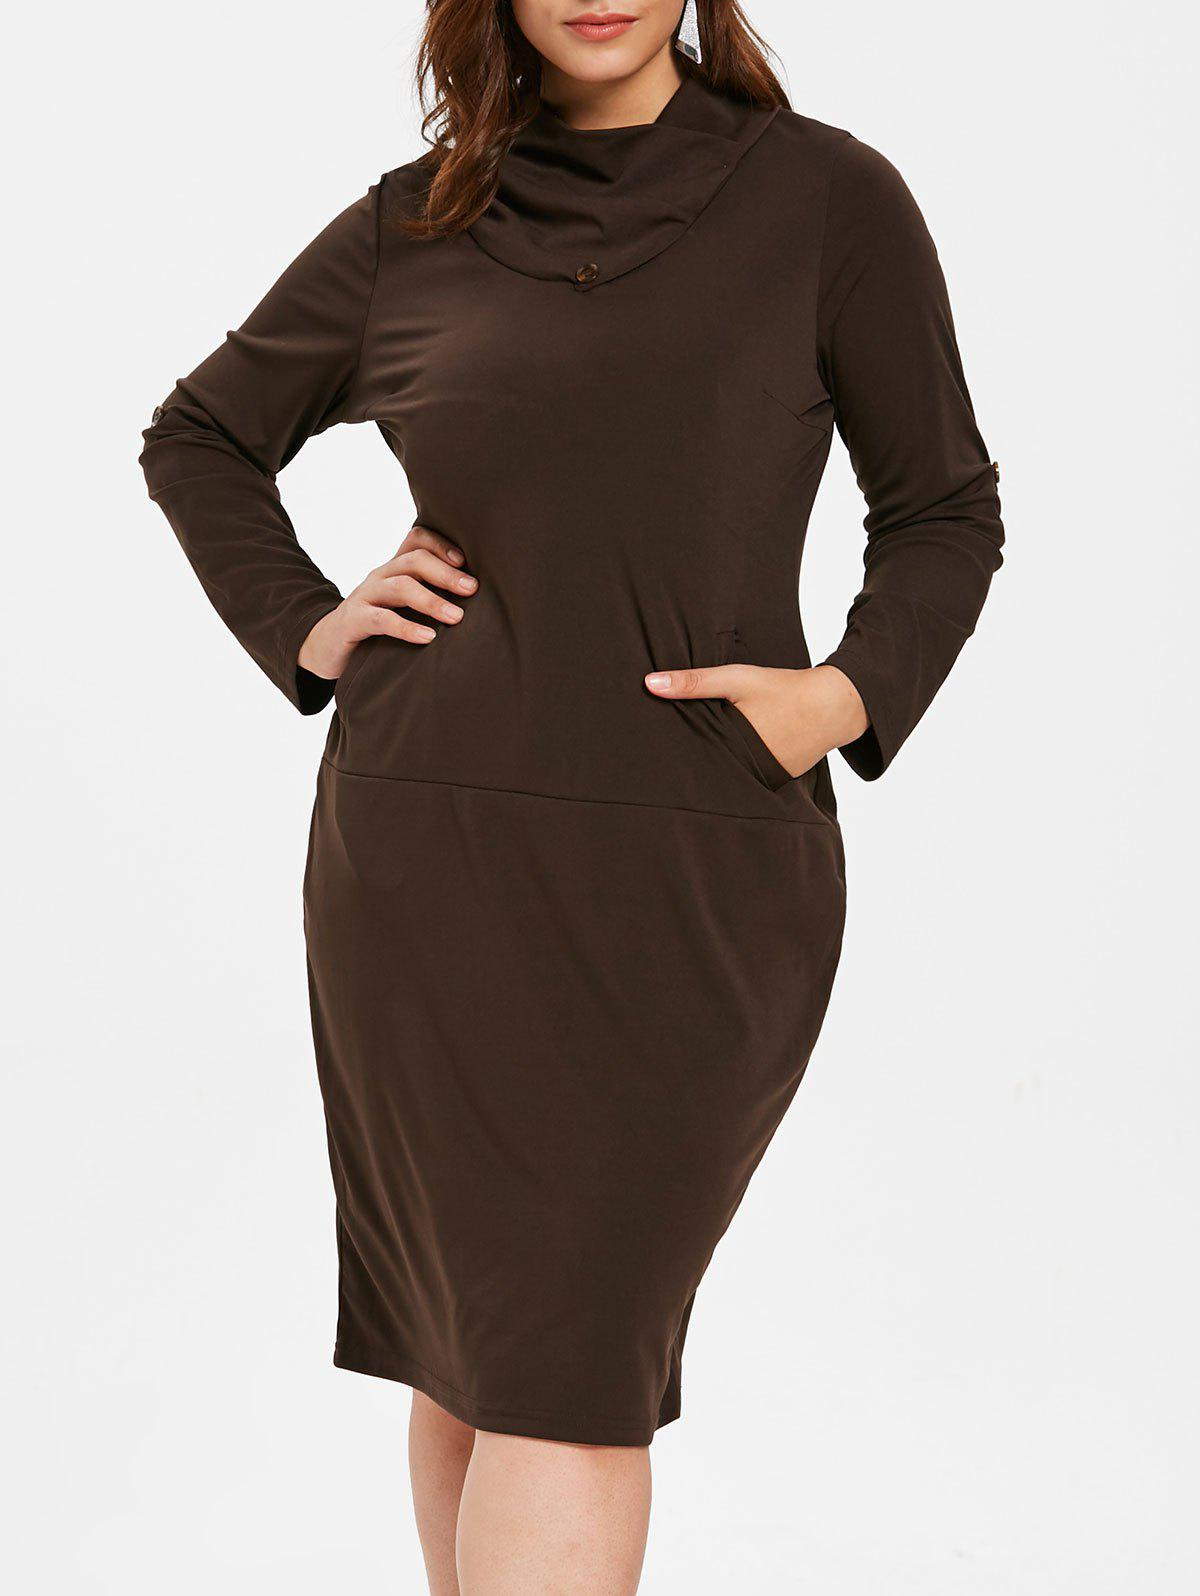 Fashion Plus Size Knee Length Bodycon Dress